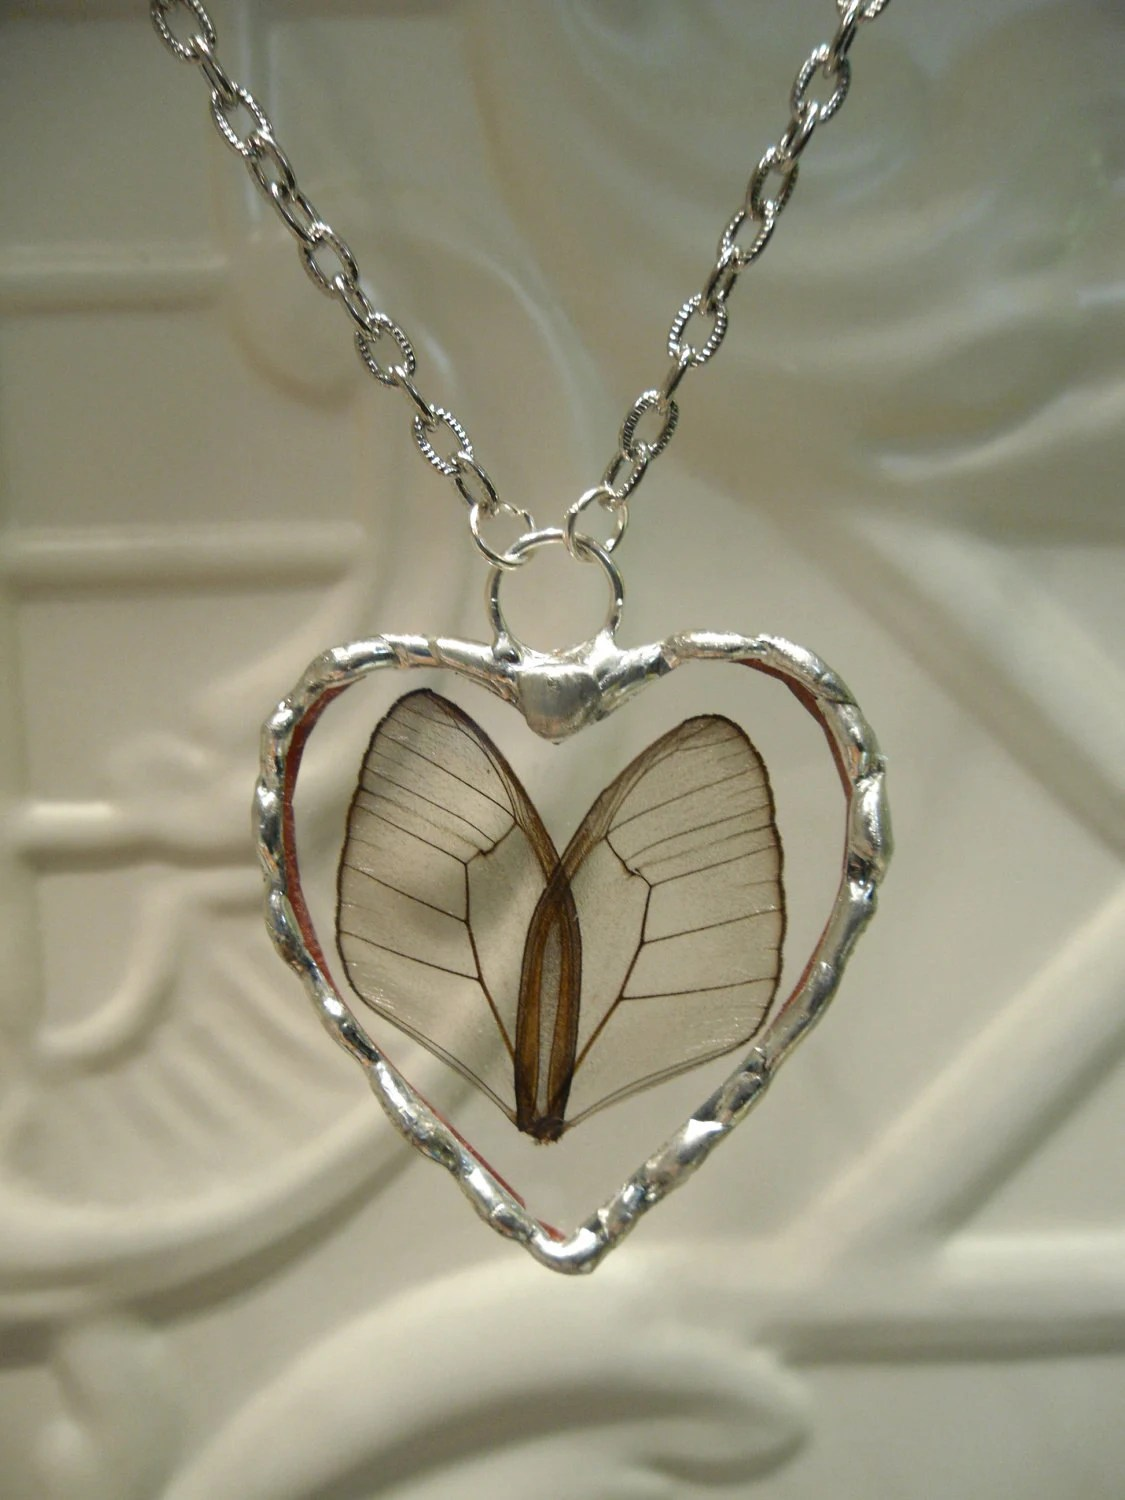 Items similar to Heart Shaped Real Butterfly Wing Necklace